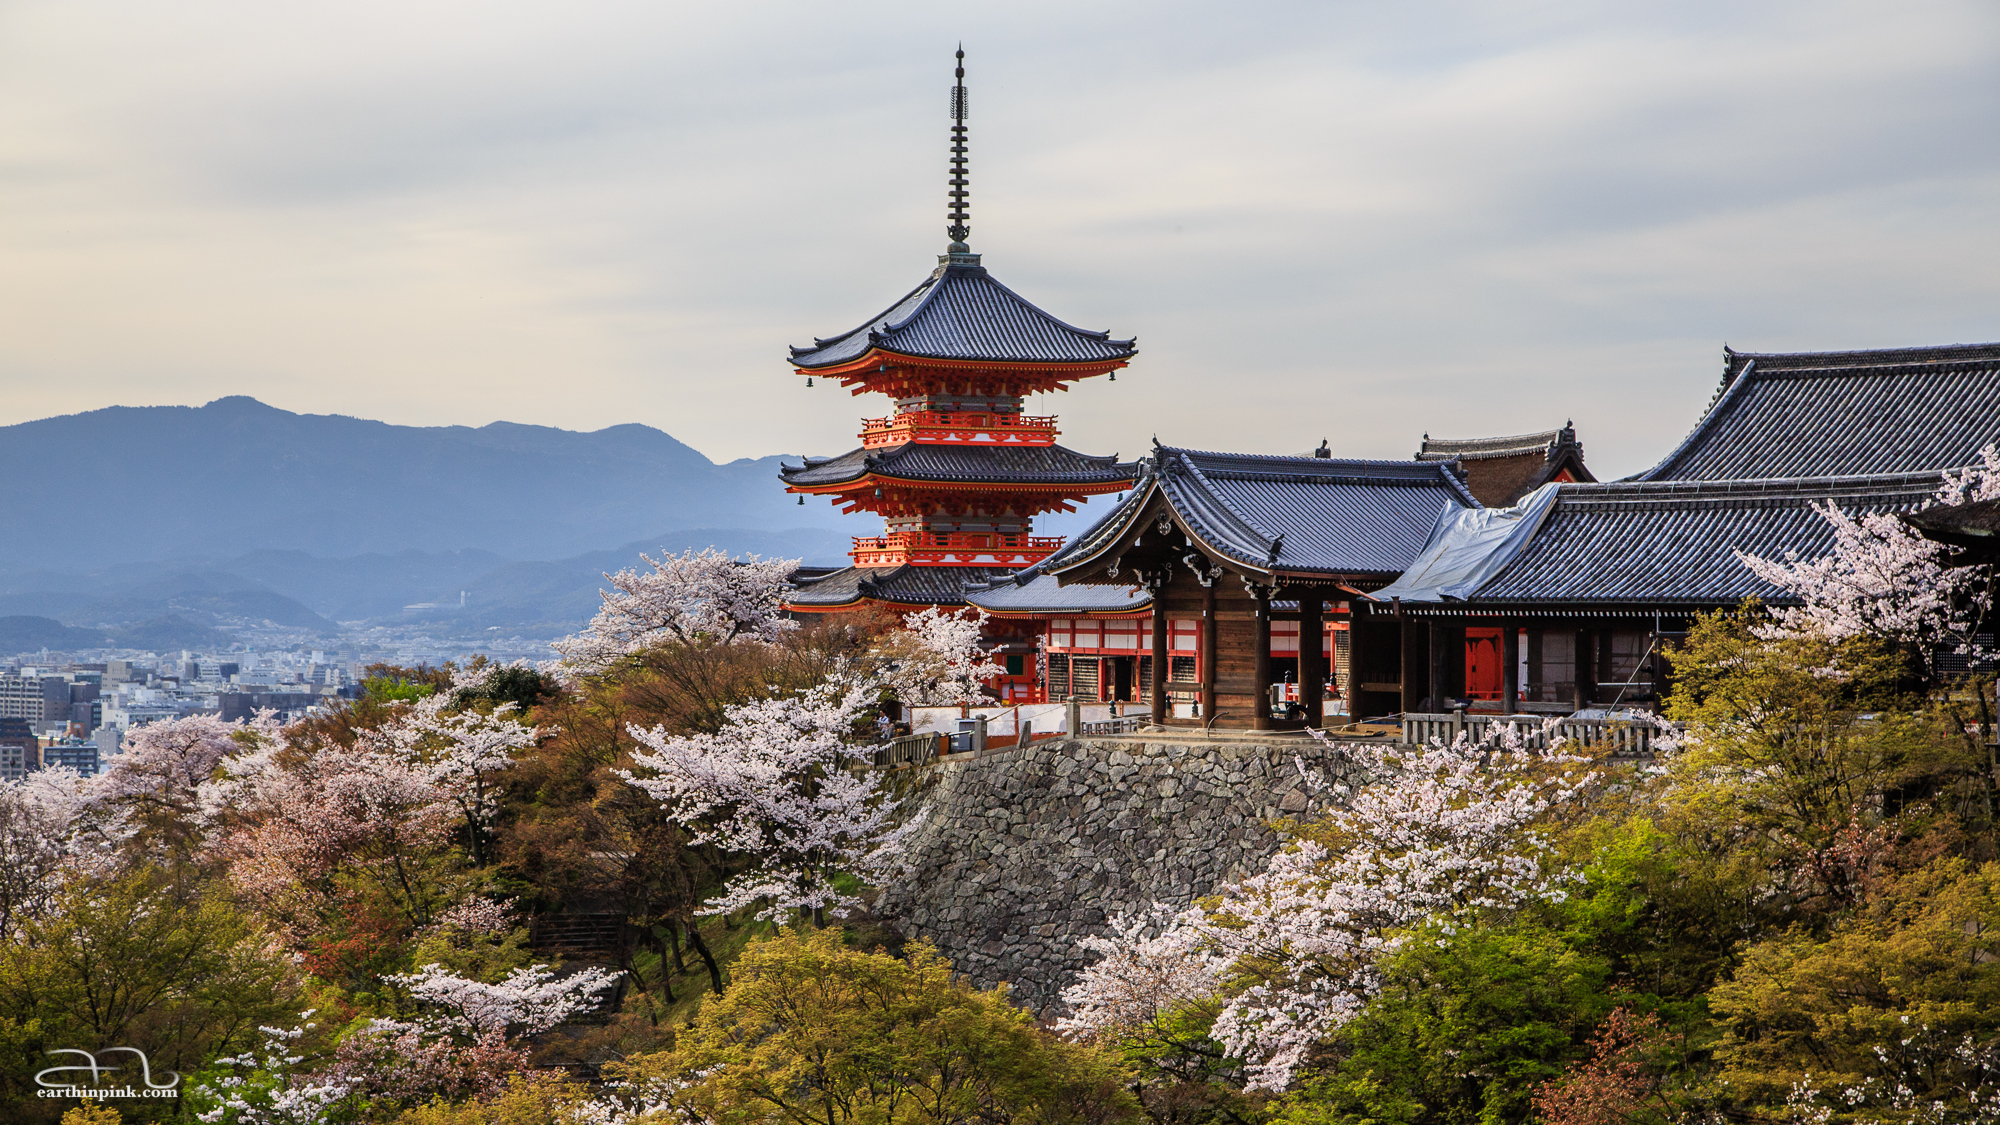 The pagoda near the entrance of Kiyomizu-dera, perched on a hill dappled with cherry trees in full bloom.